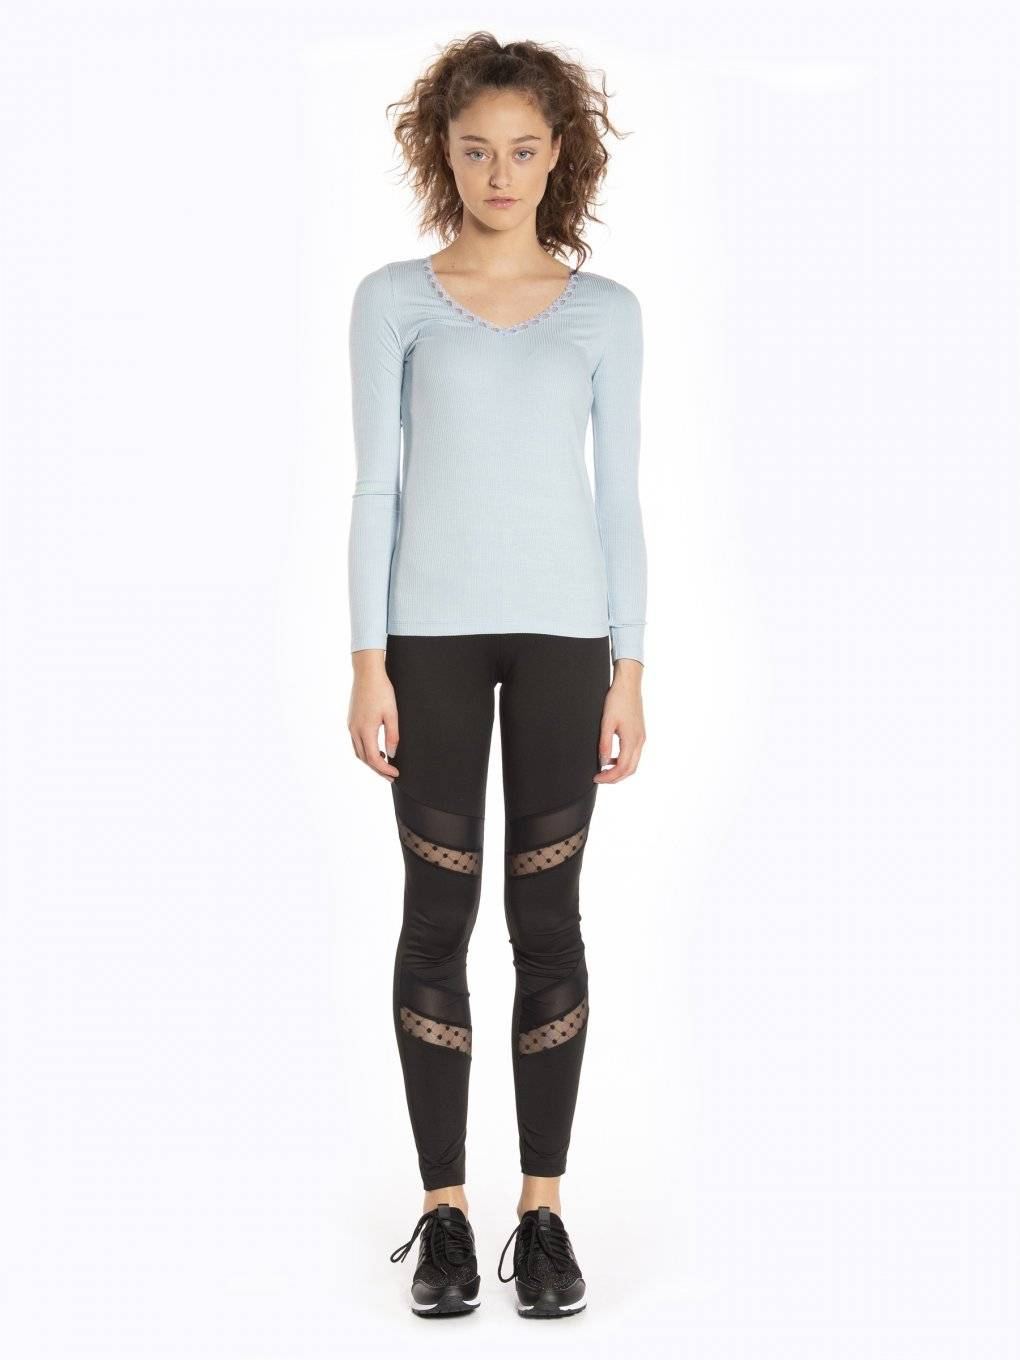 Leggings with mesh detail